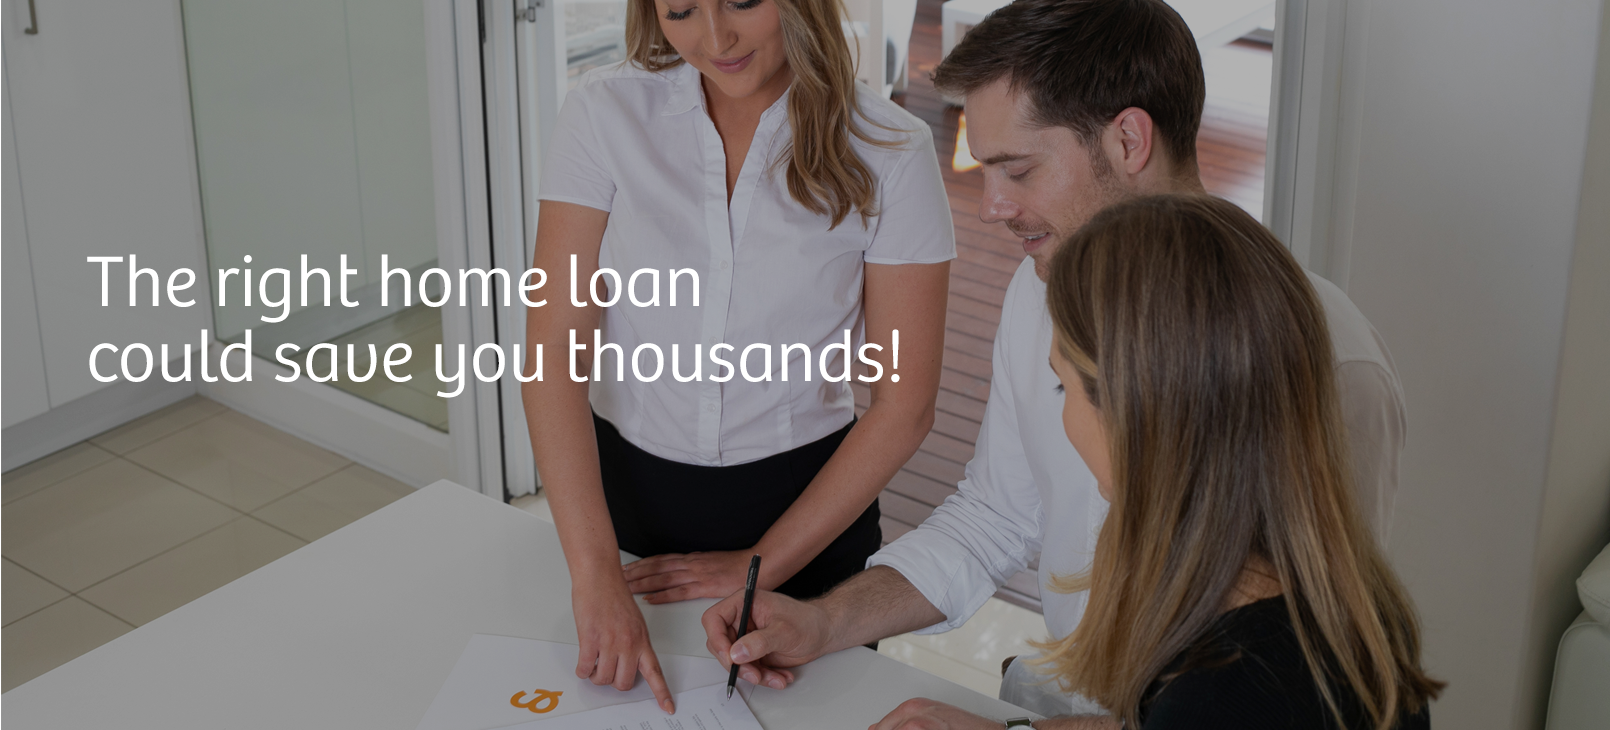 The right home loan could save you thousands!